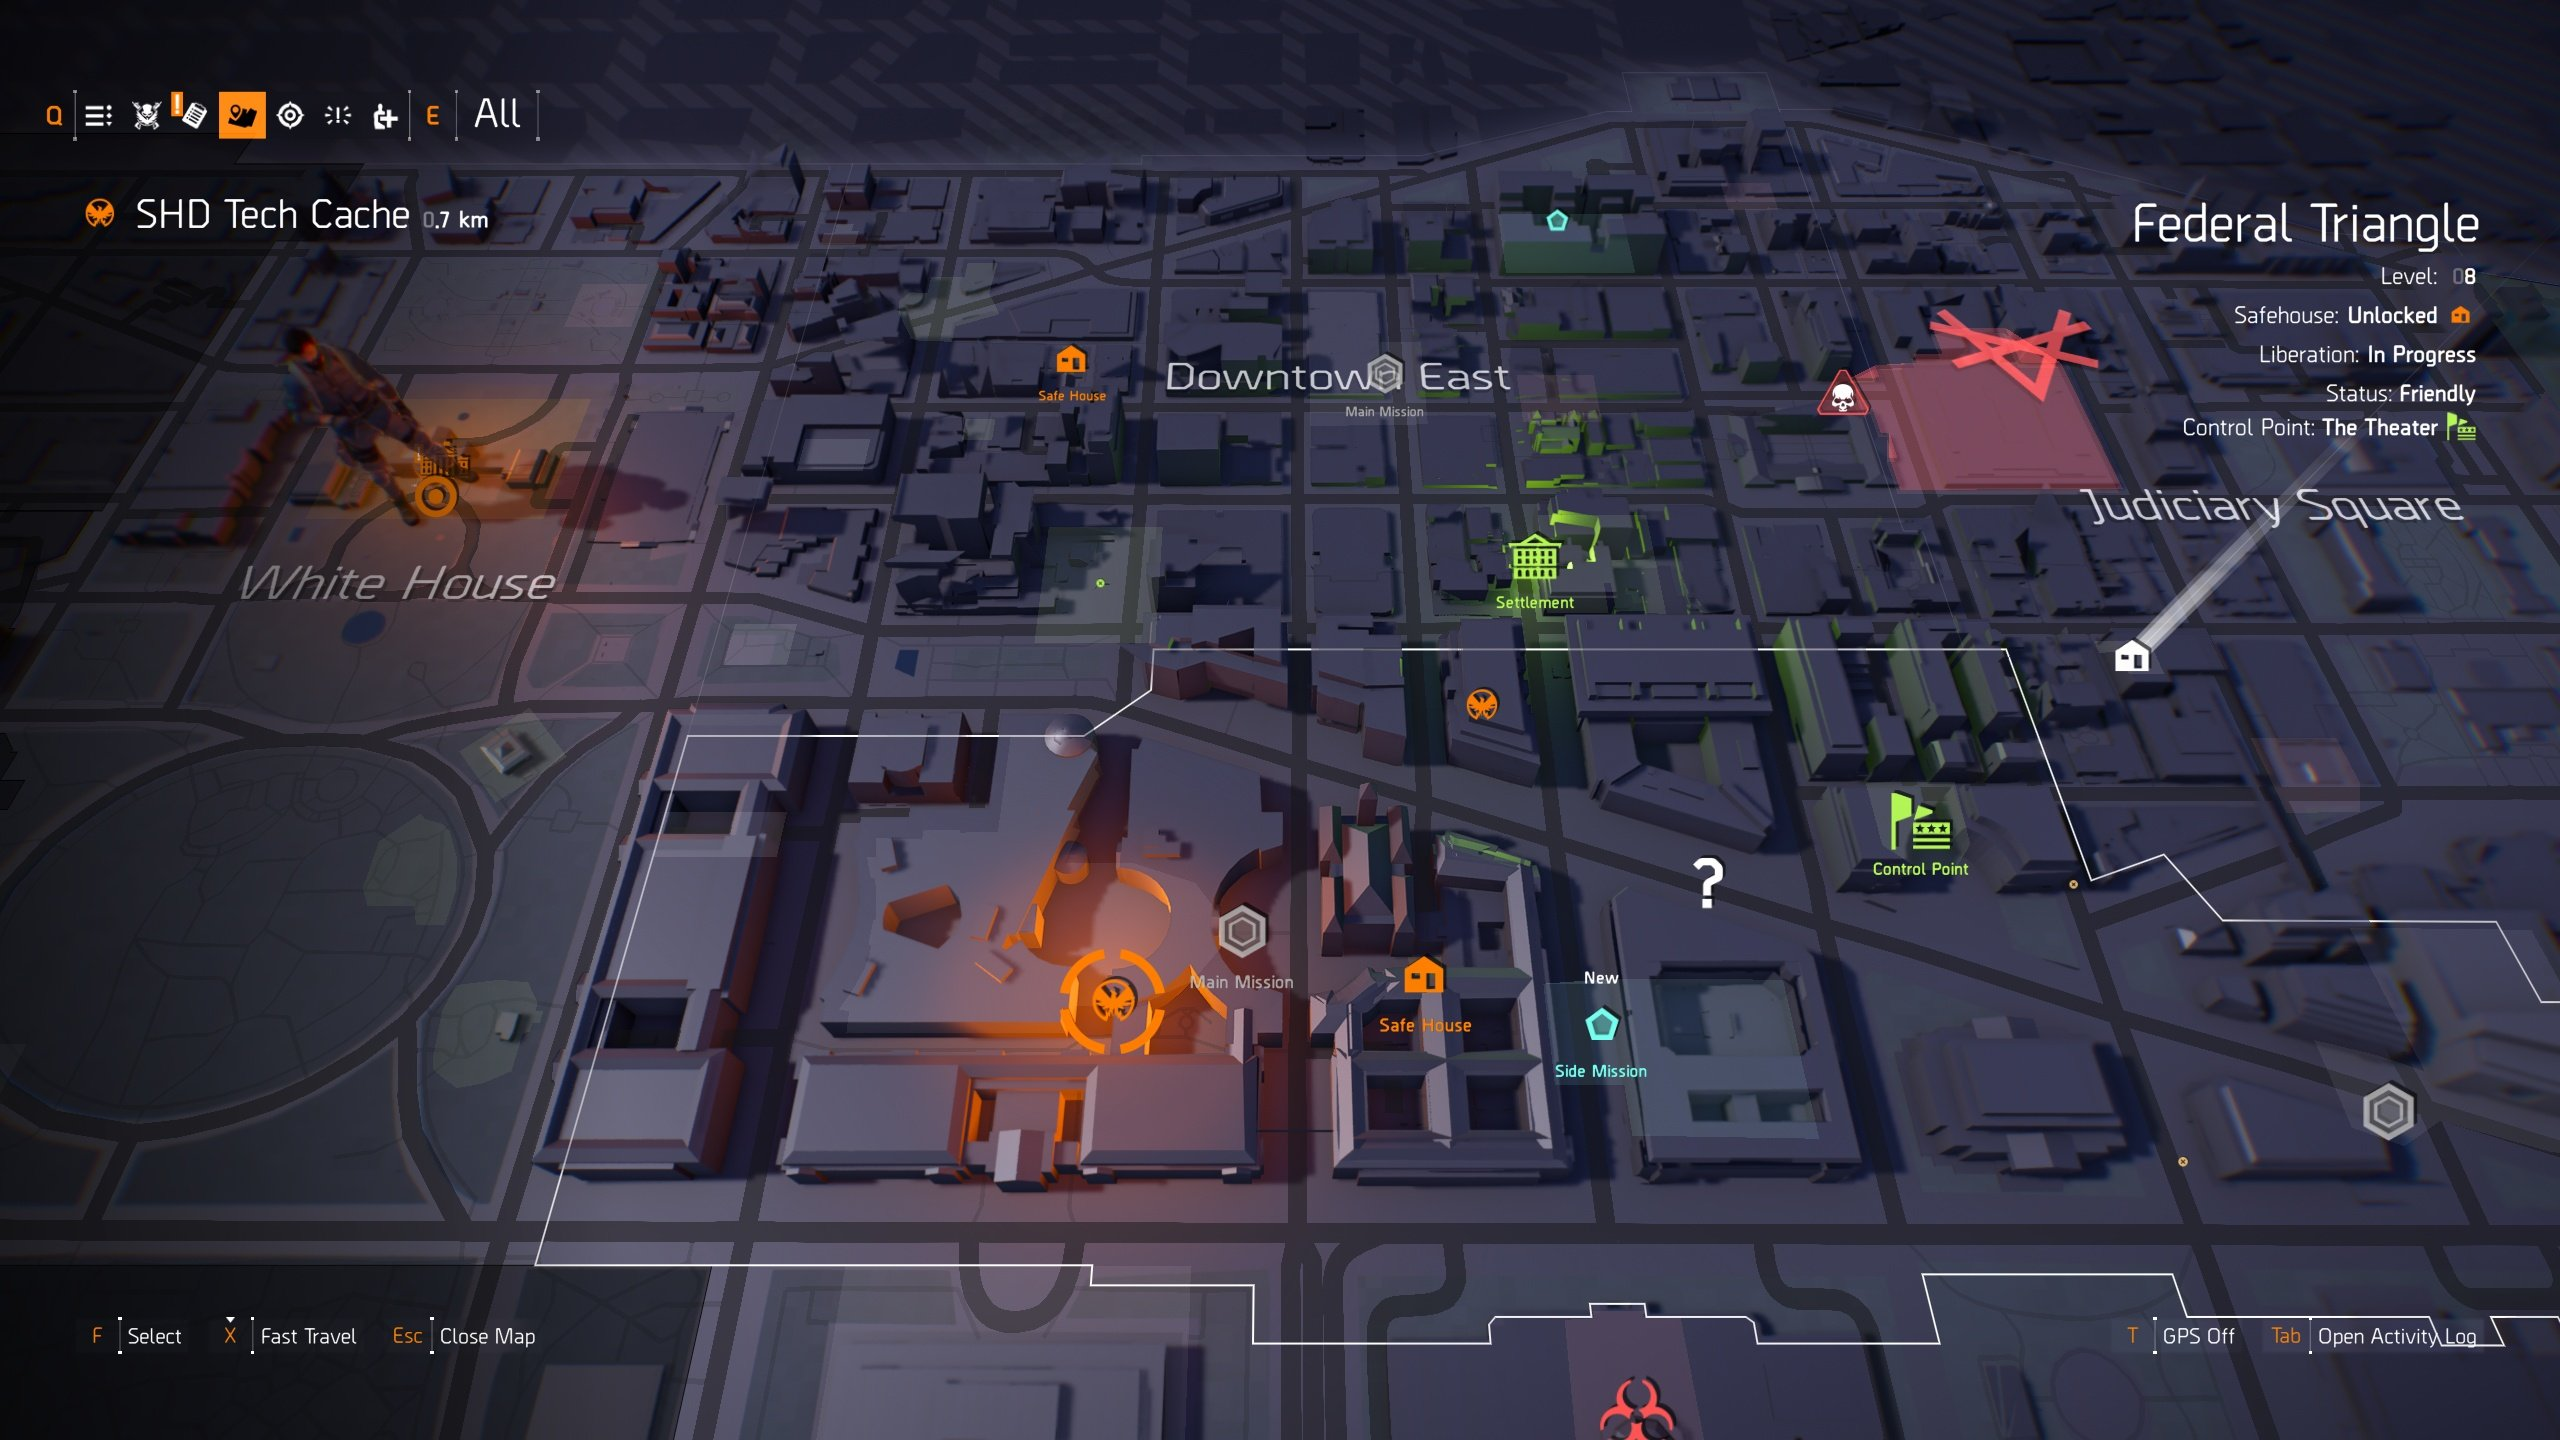 Side missions of The Division 2 - Division 2 tracker | Division 2